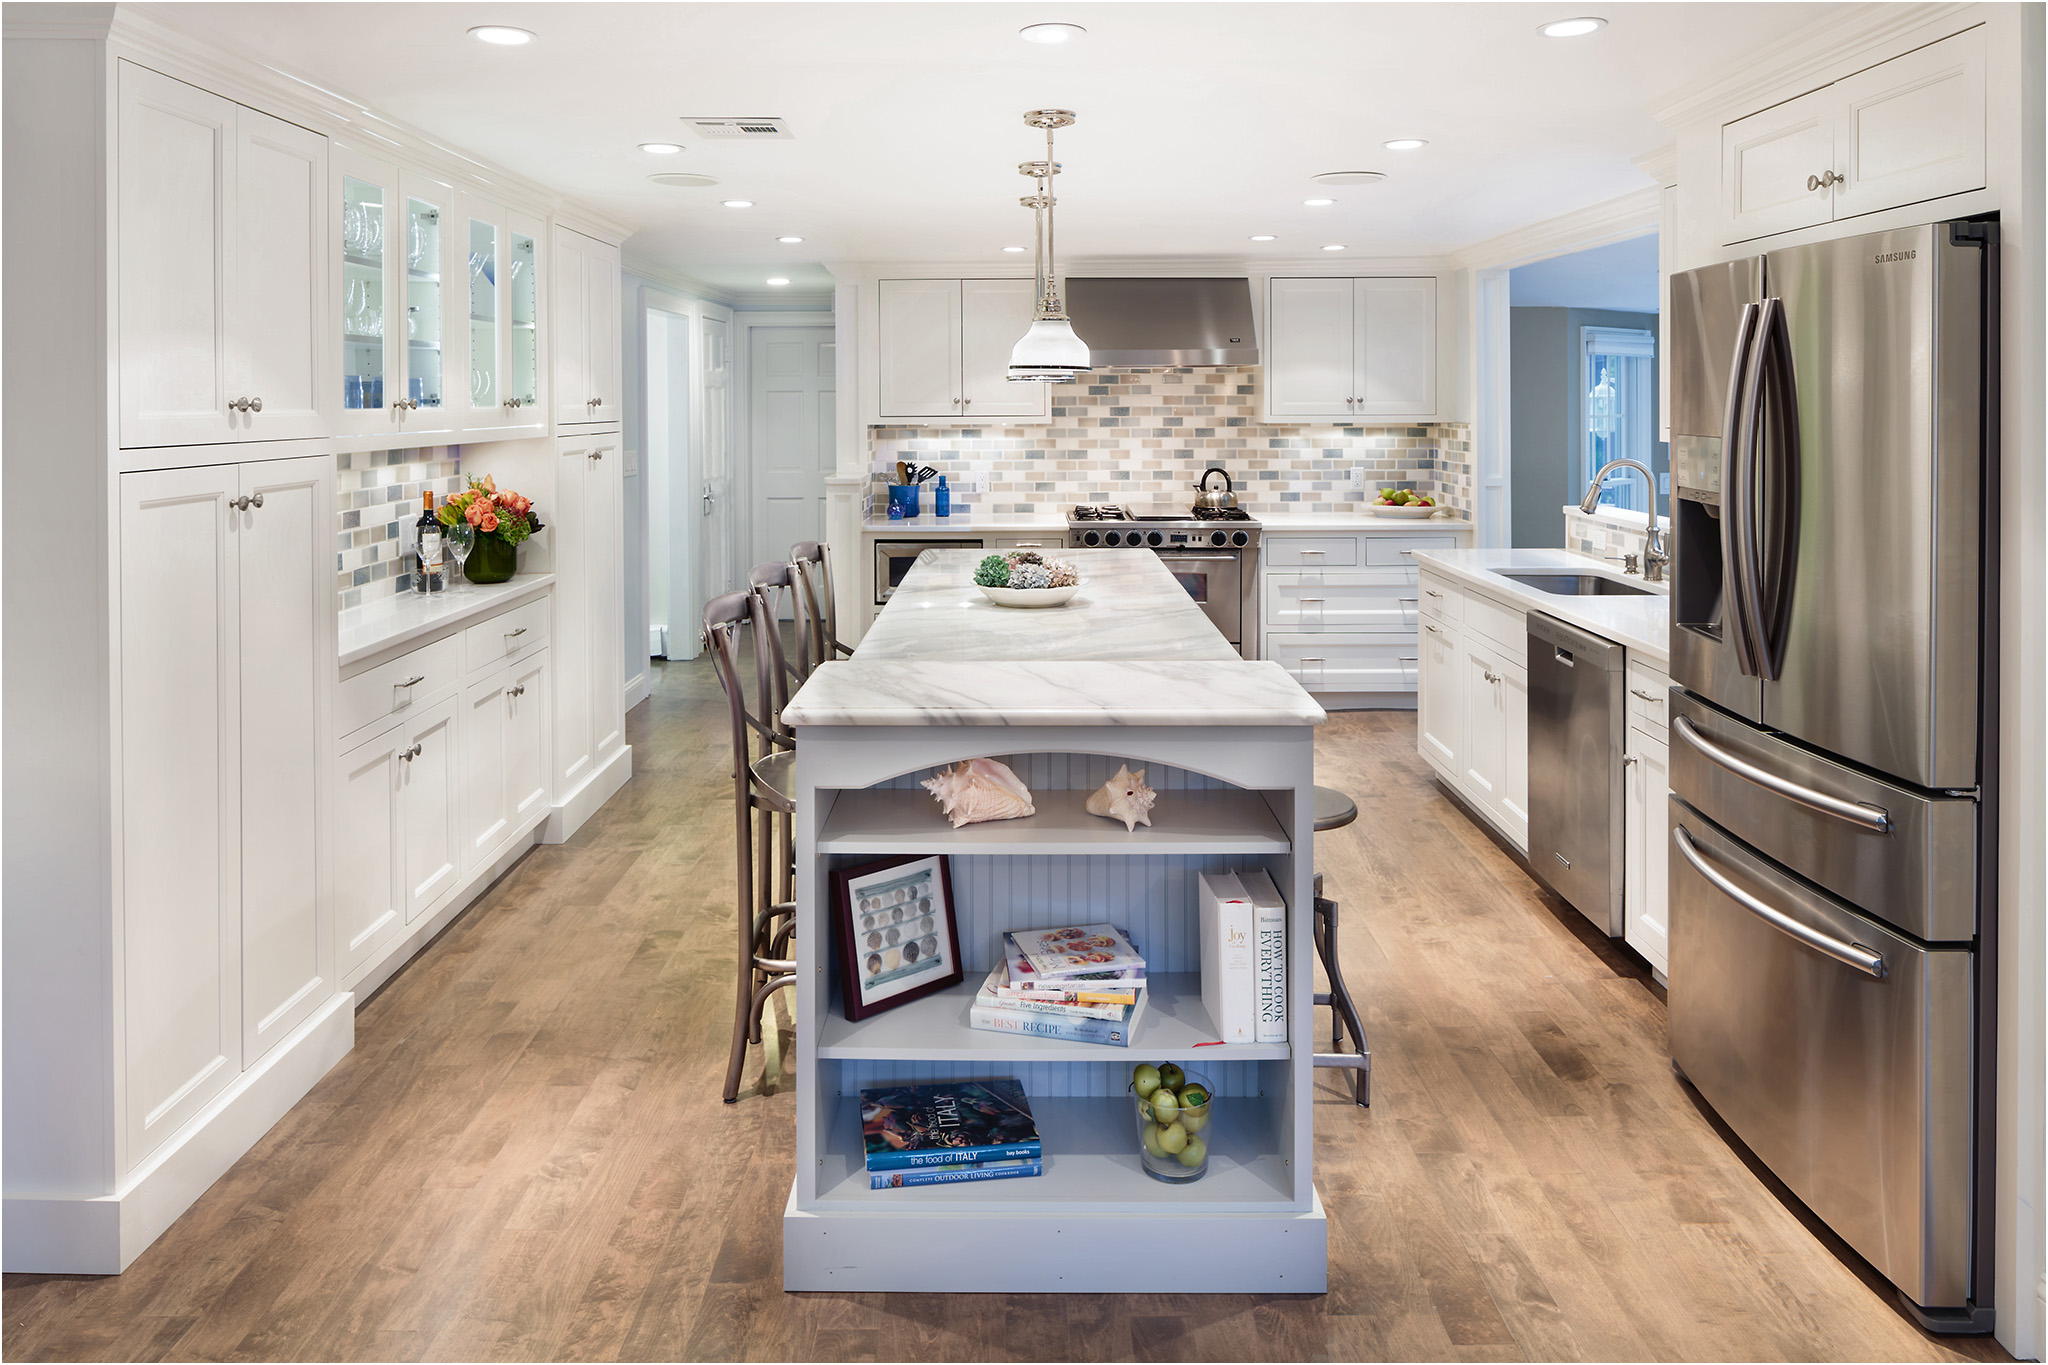 interior architectural photography. ARCHITECTURAL PHOTOGRAPHER BOSTON Interior Architectural Photography